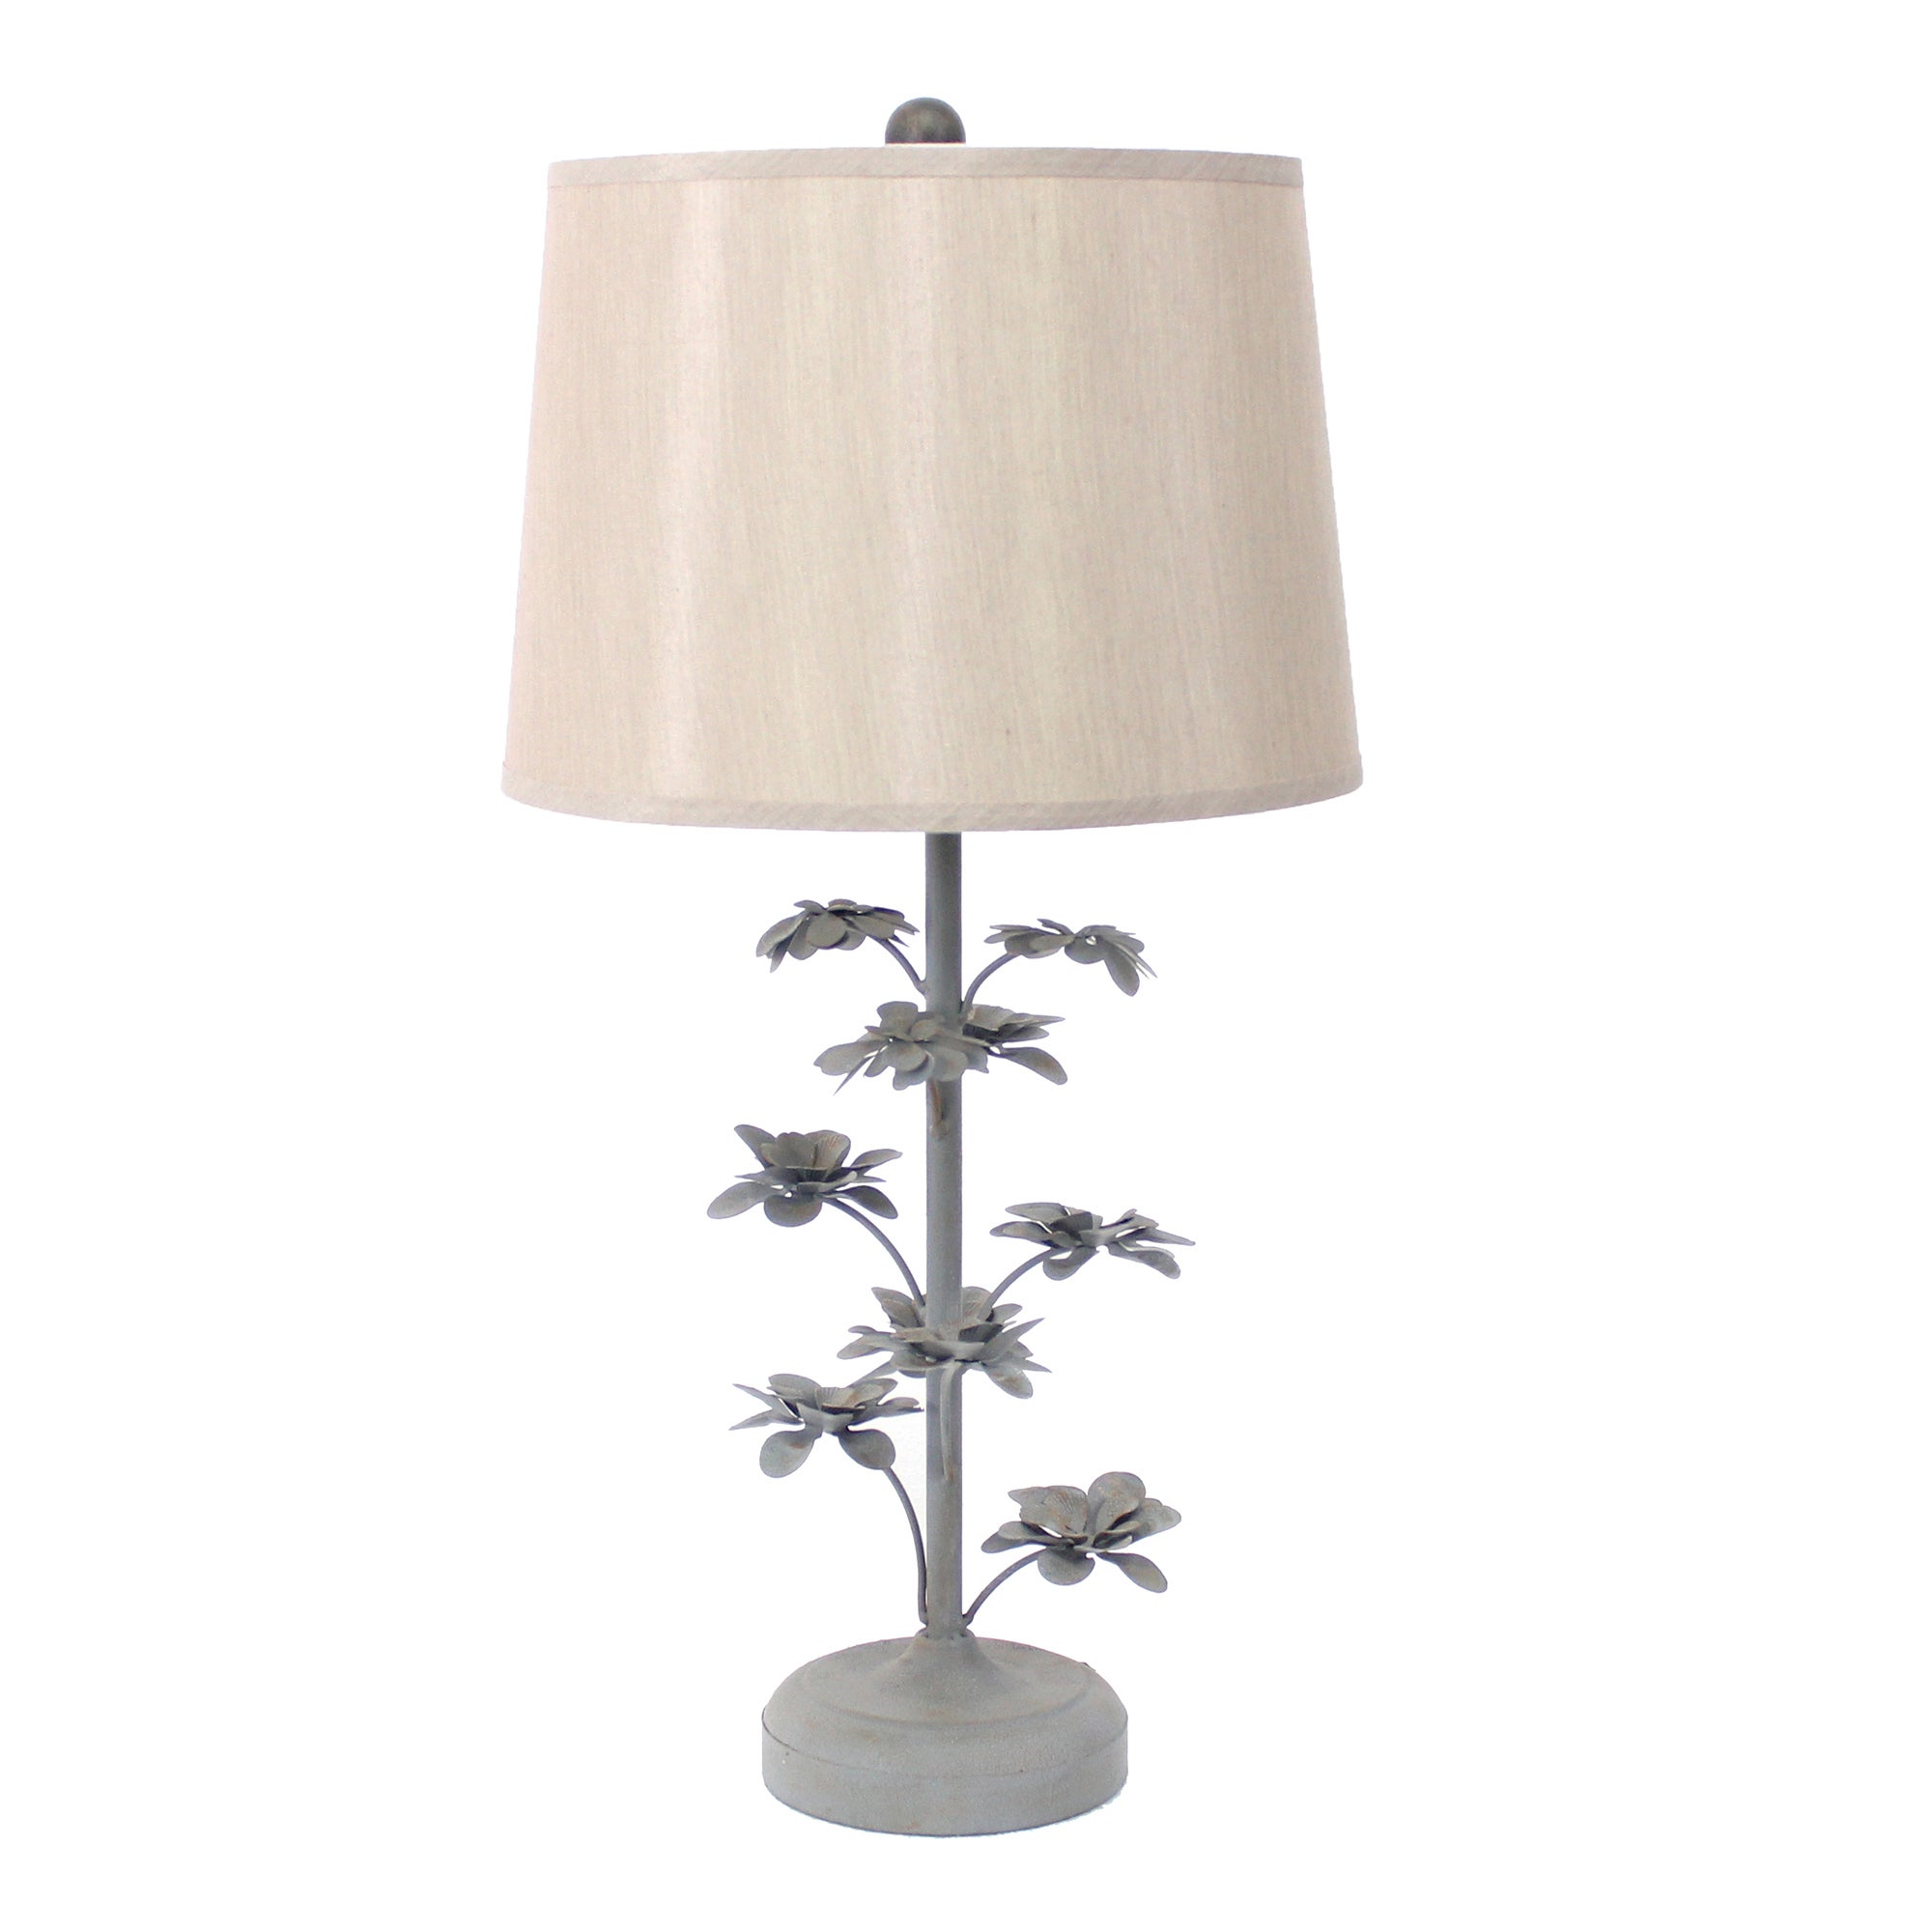 Teton Home 2 Tl 020 Metal Floral Table Lamp Free Shipping Today